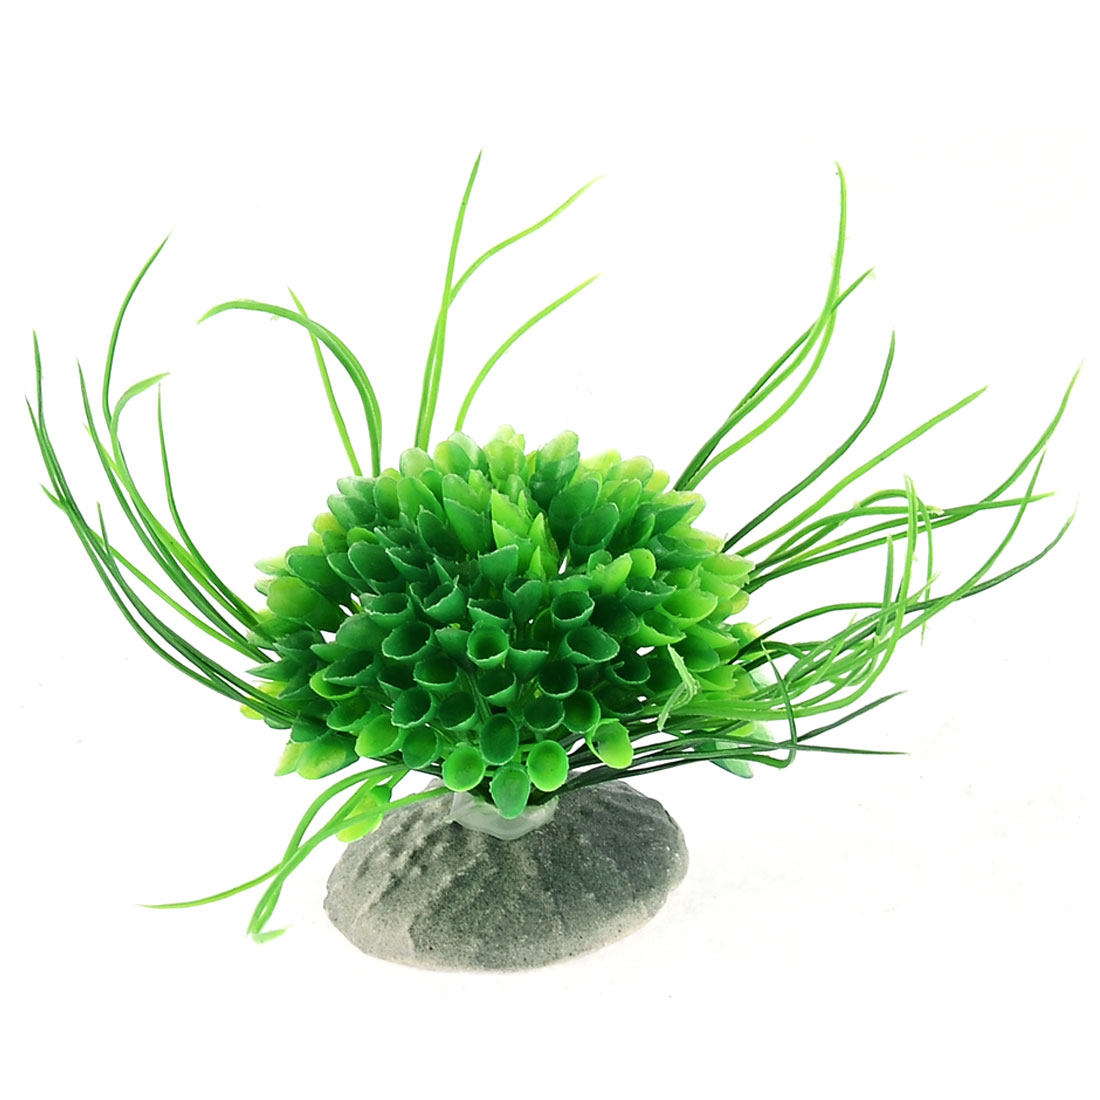 Aquarium Water Green Artificial Plastic Grass Plant Fish Tank Landscape